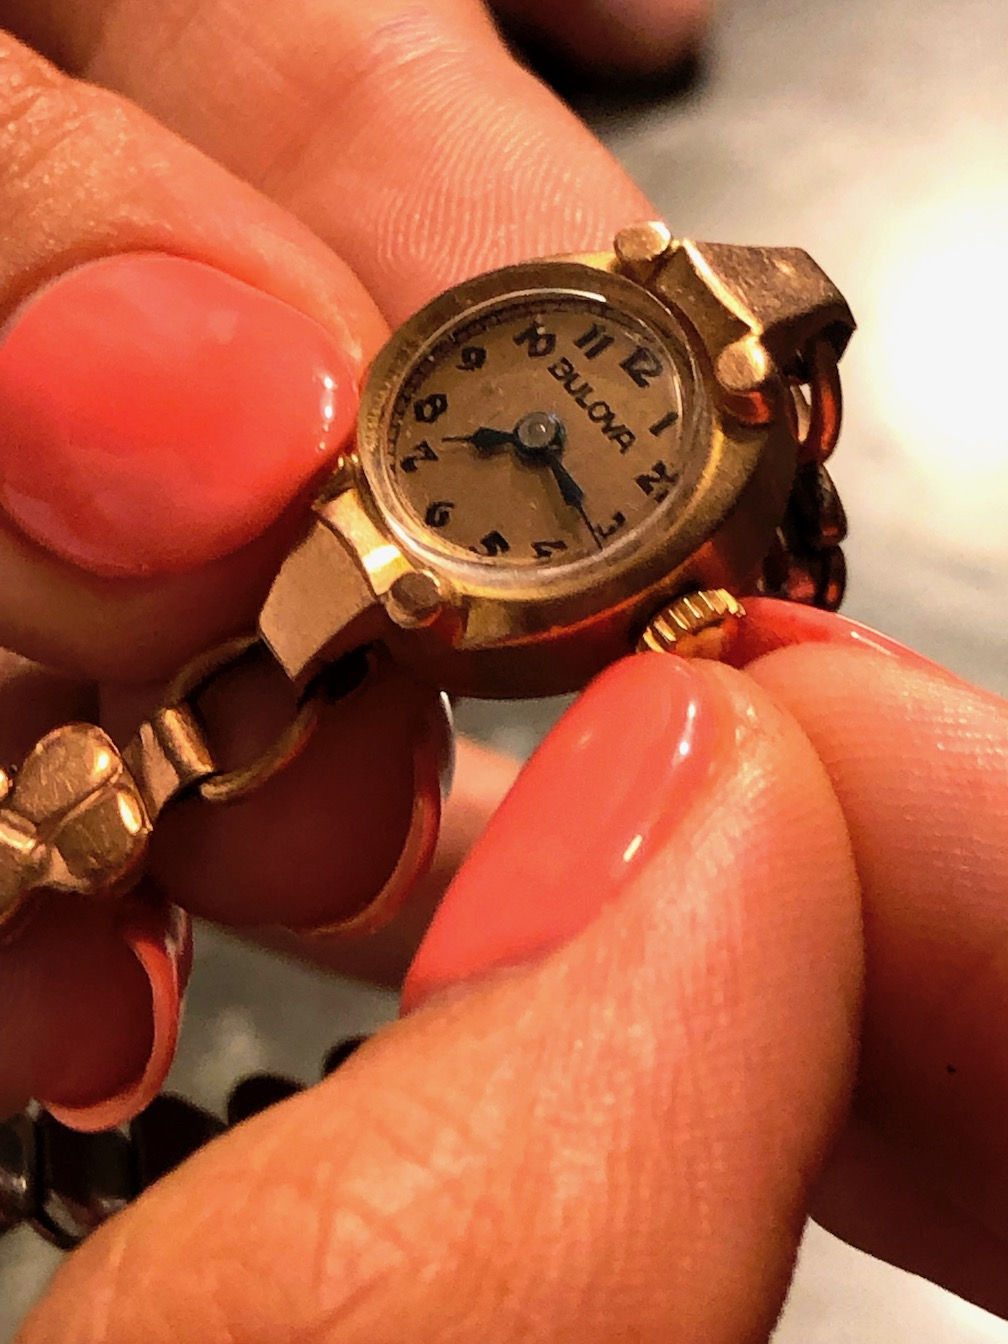 Restoring vintage watches